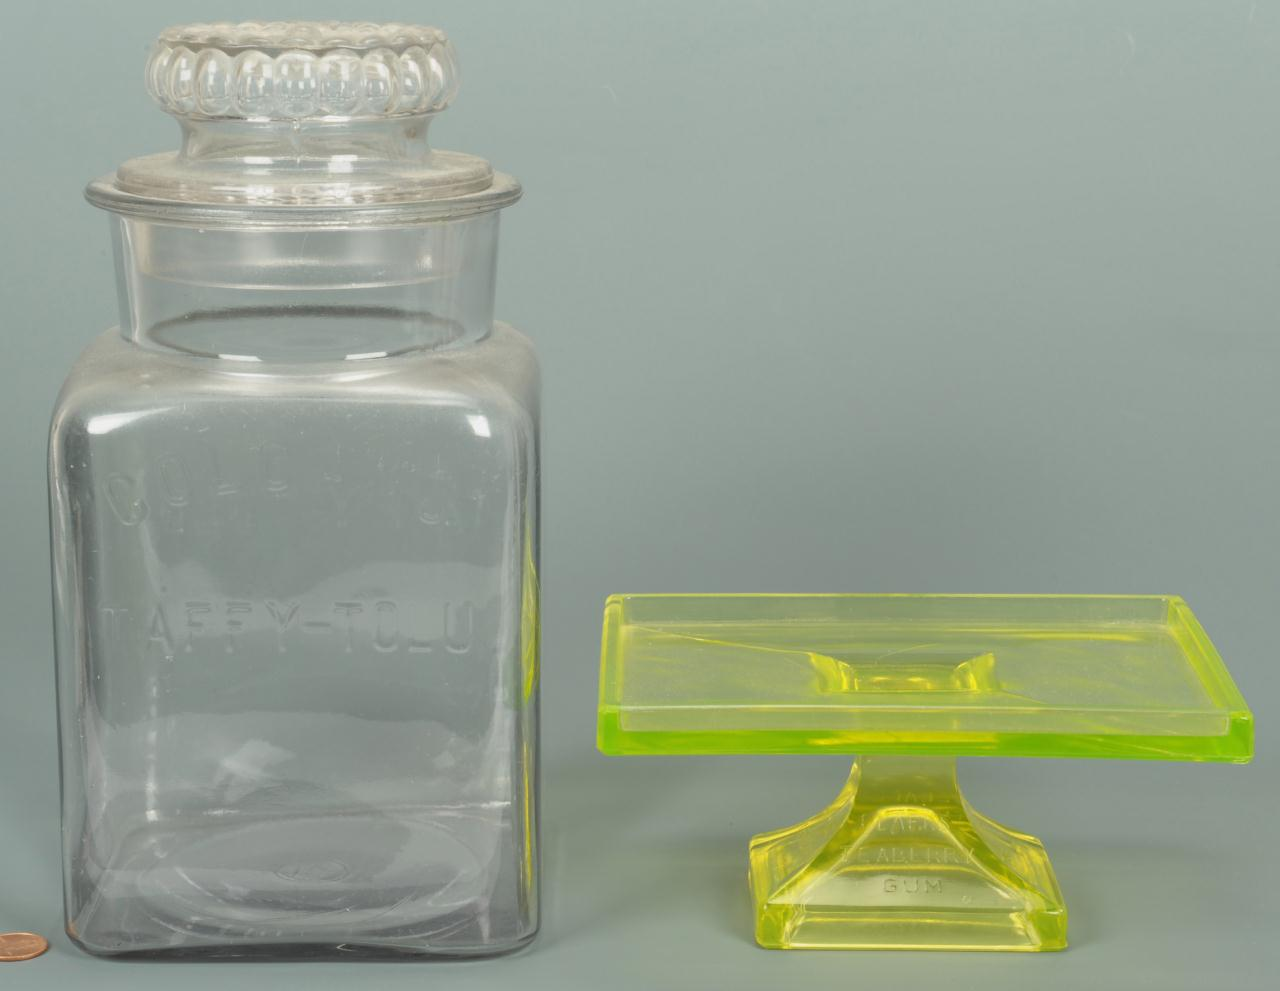 Lot 650: Glass Gum Jar and Vaseline Teaberry Gum Stand